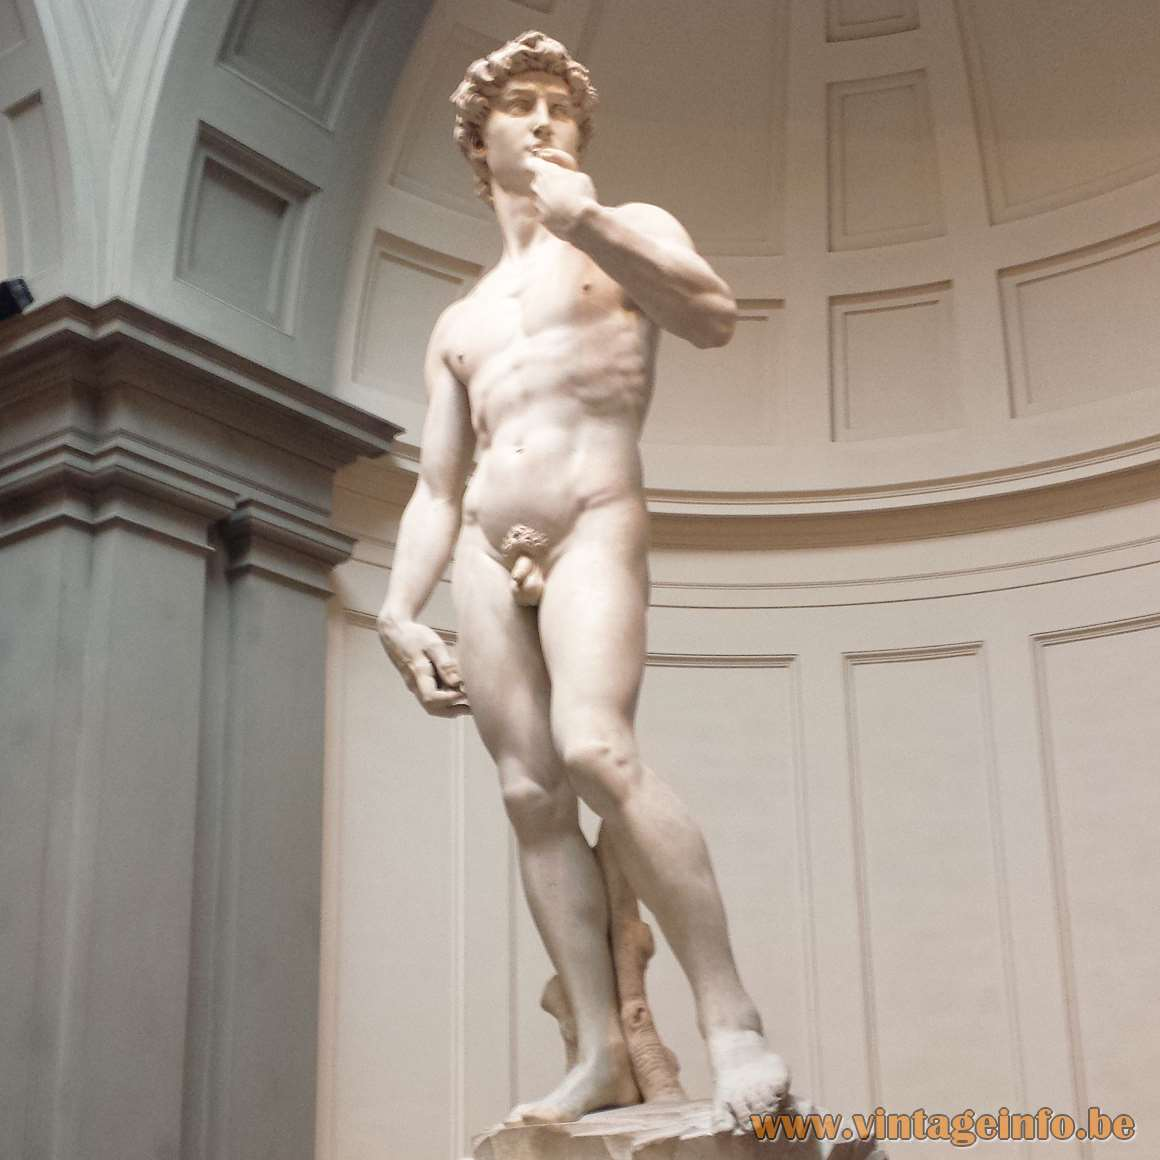 Targetti Clamp Spot Lamp - Targetti lights shining on David by Michelangelo in Florence, Italy - photo 2016